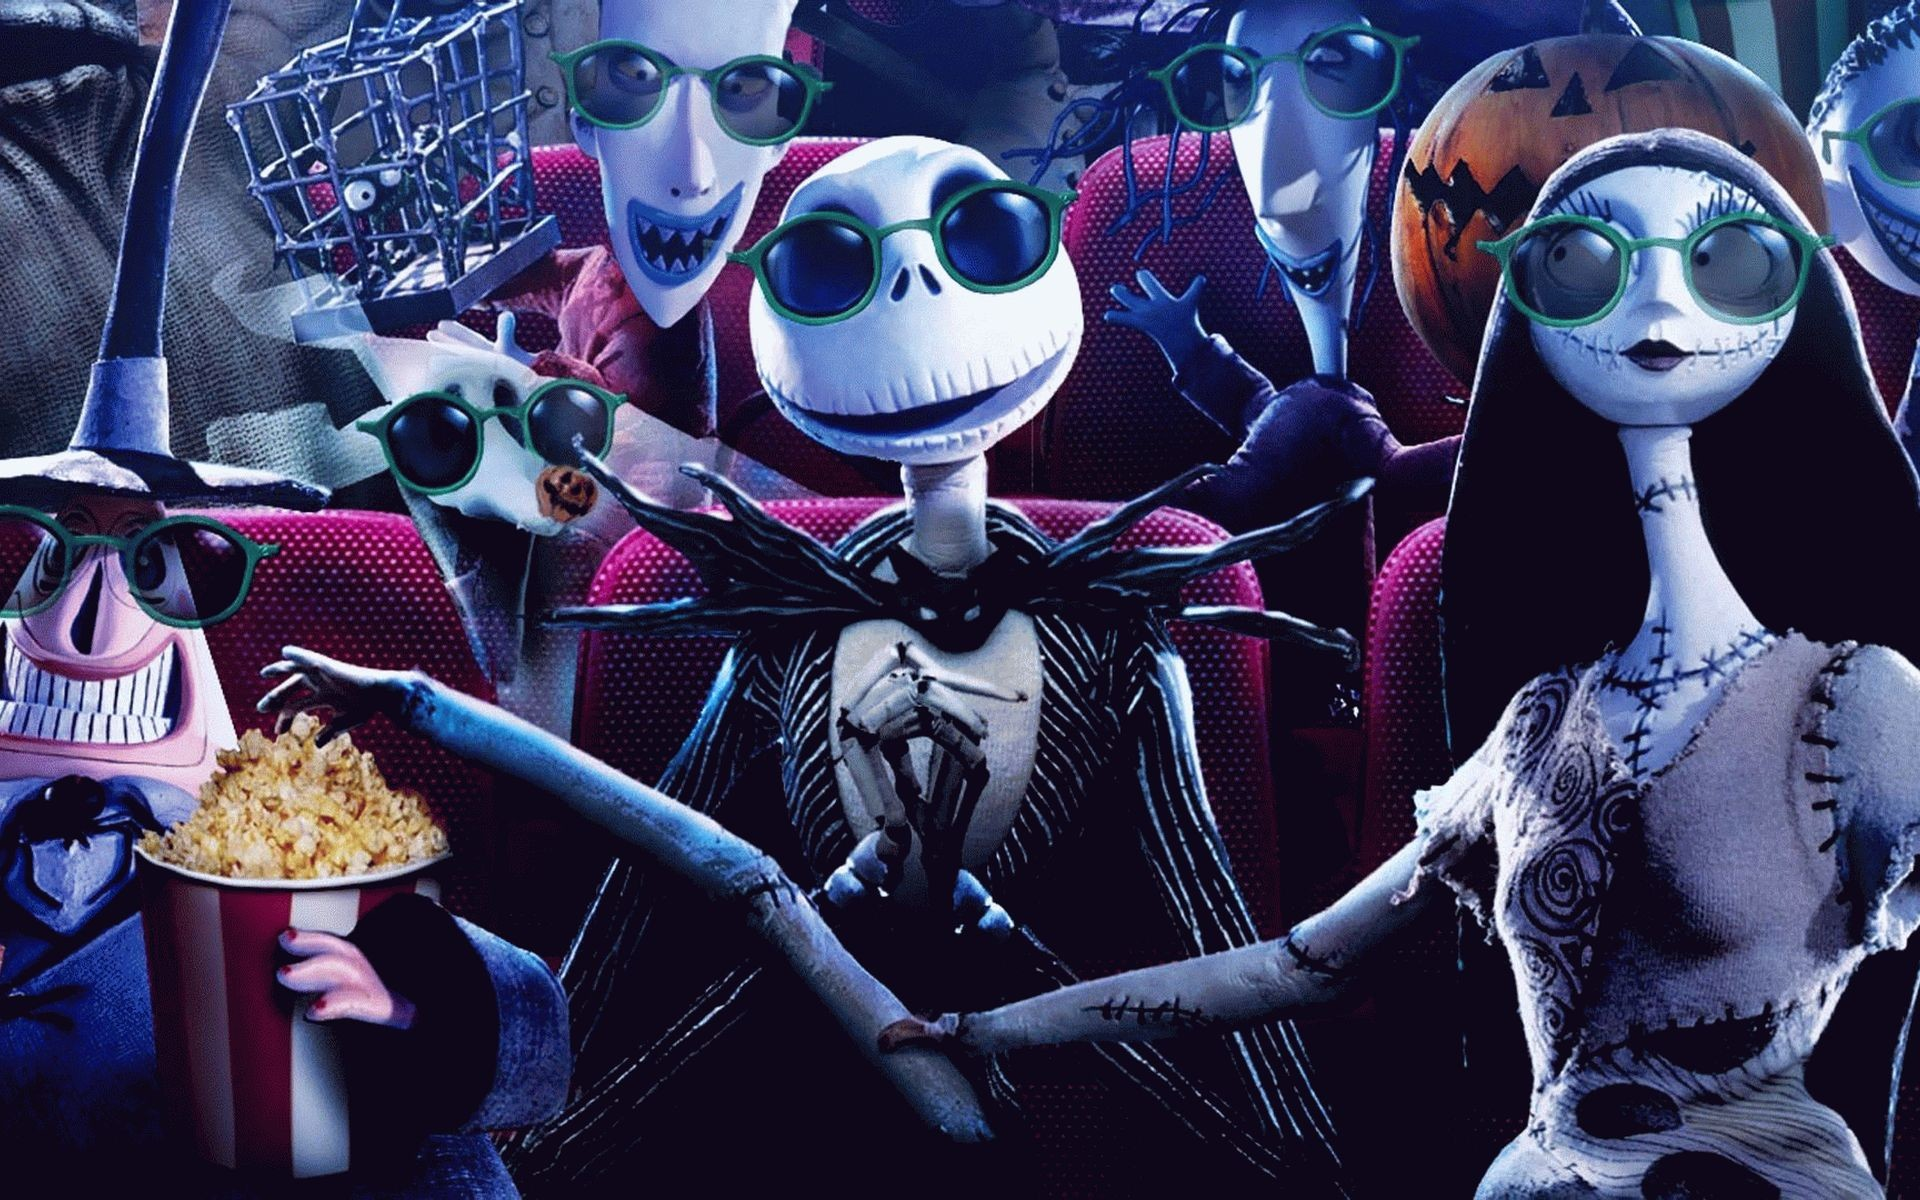 Nightmare Before Christmas Hd Wallpaper.The Nightmare Before Christmas Backgrounds 61 Images